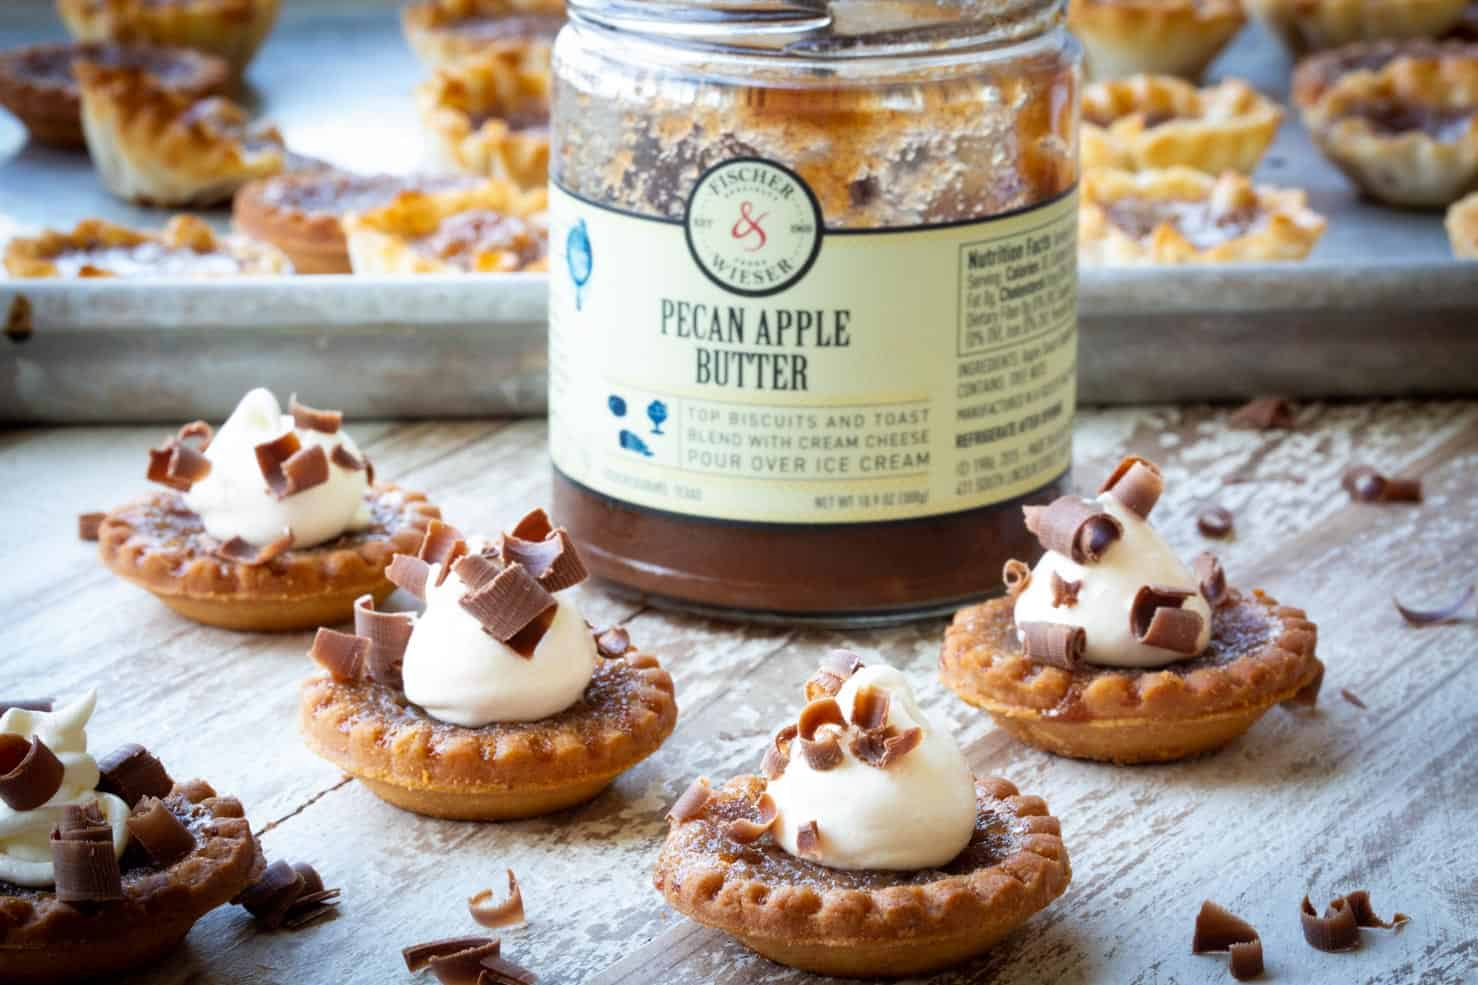 Pecan Apple Butter and Tartlets made into desserts